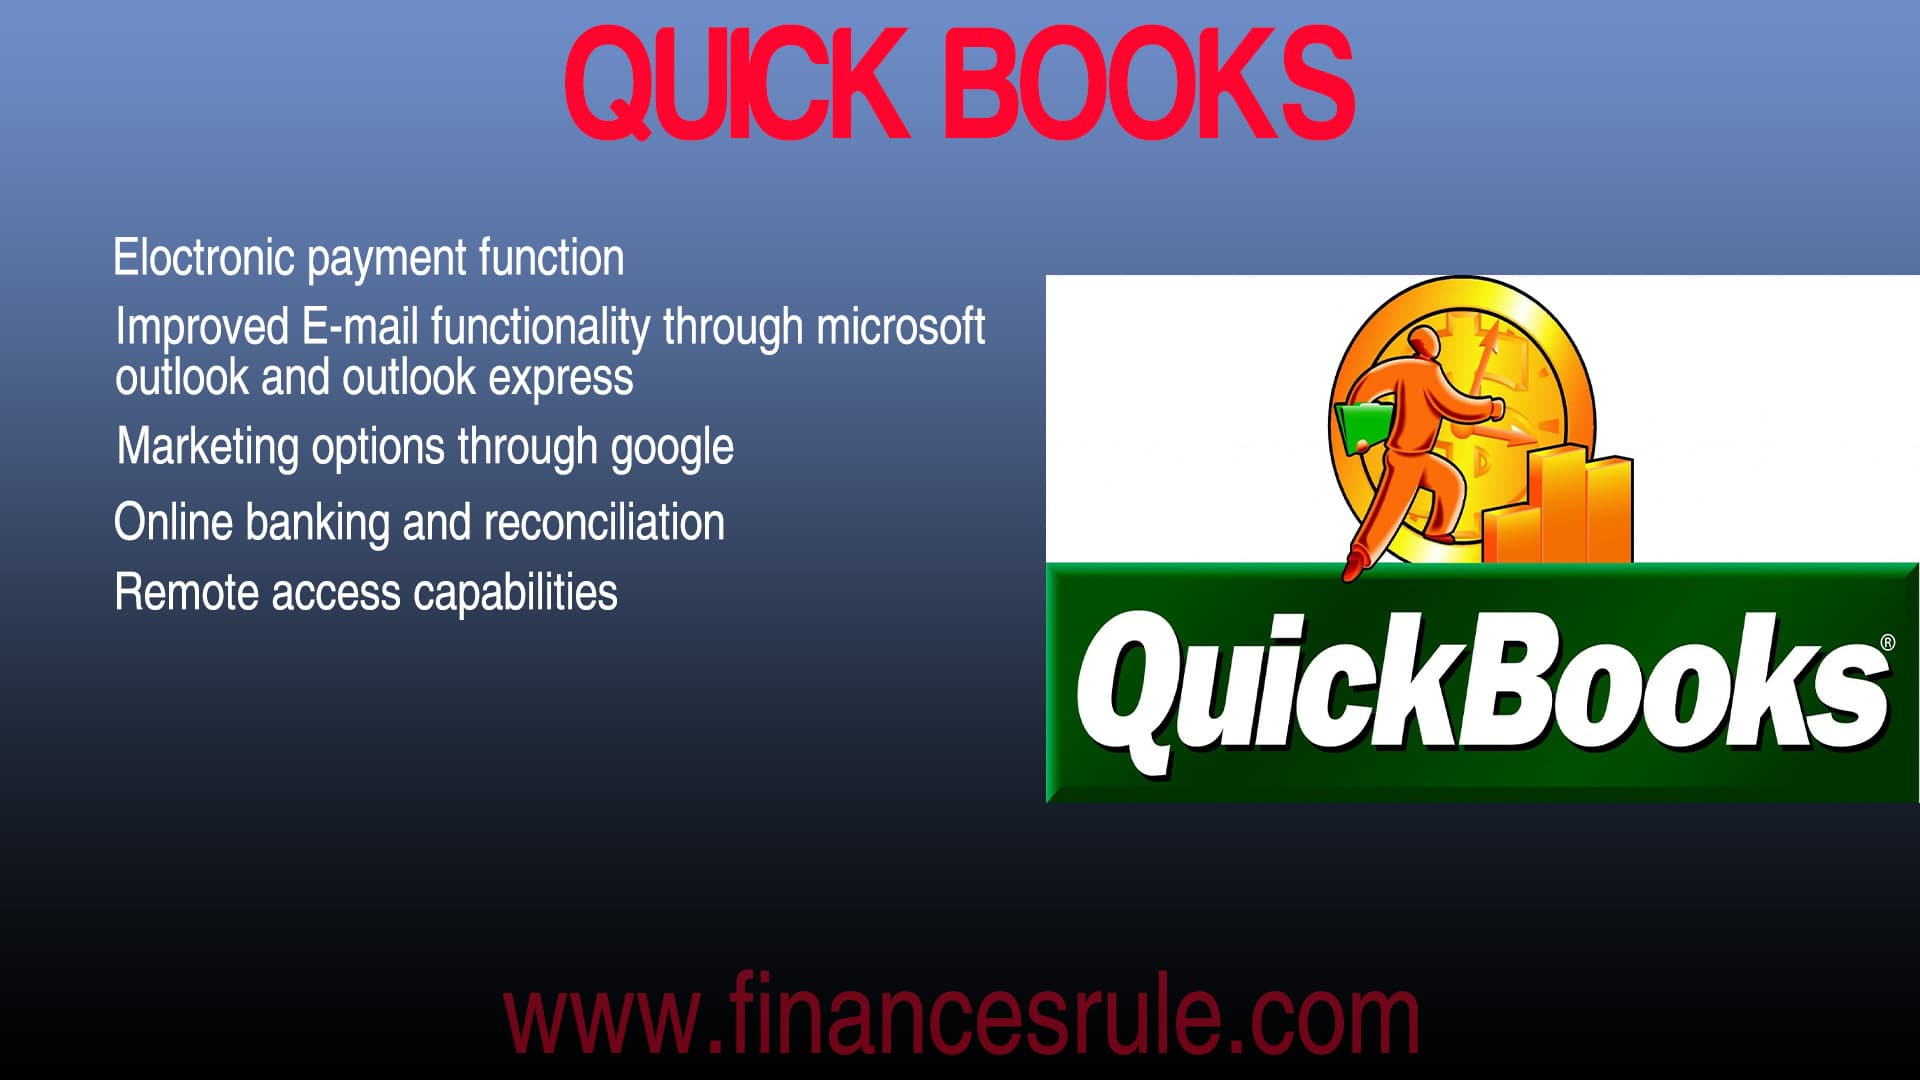 QuickBooks Online - The Best Software for Business Accounting